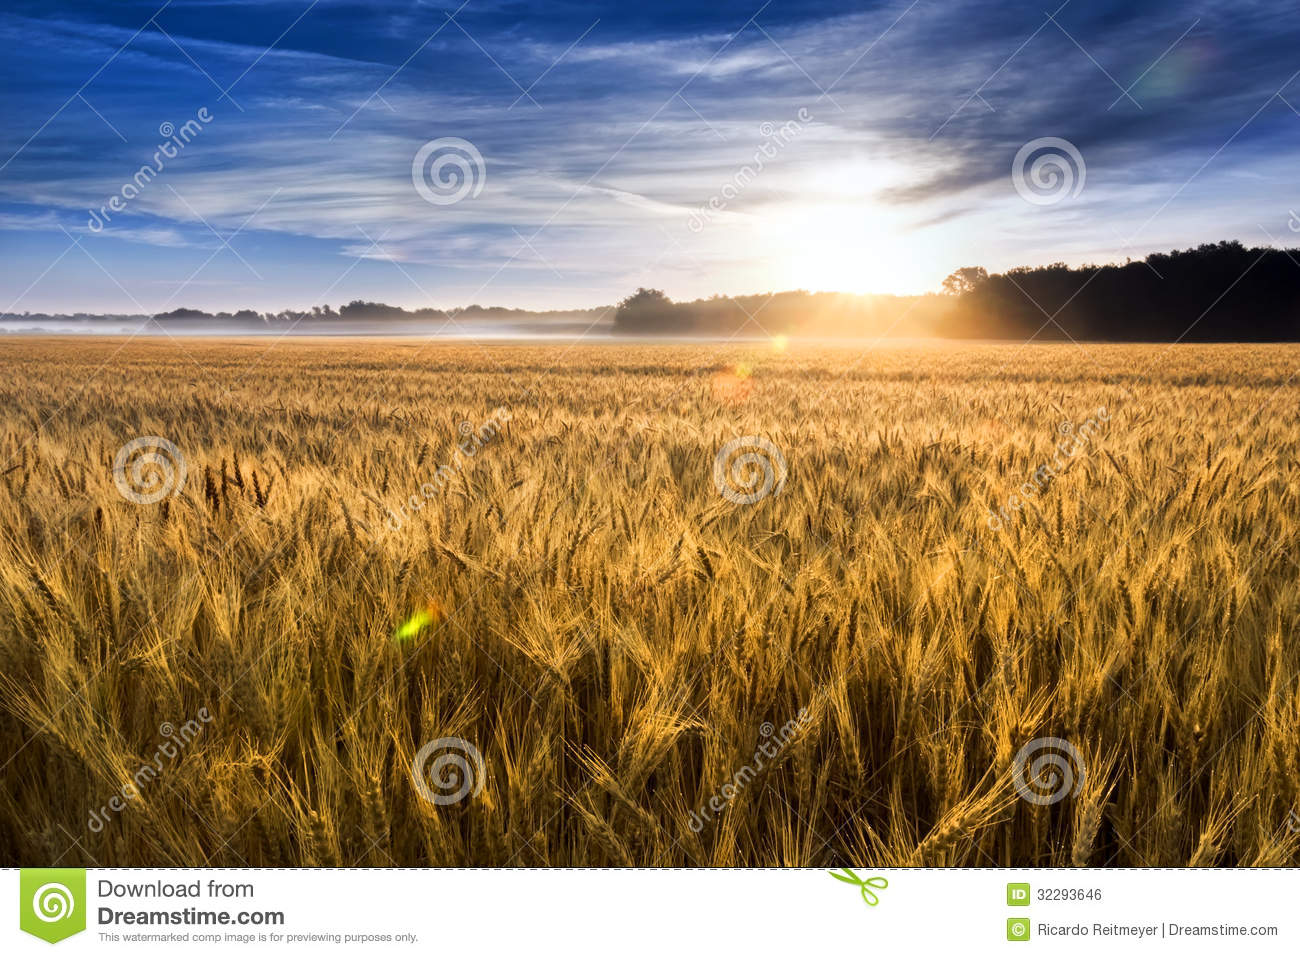 Misty Sunrise Over Golden Wheat Field in Central K